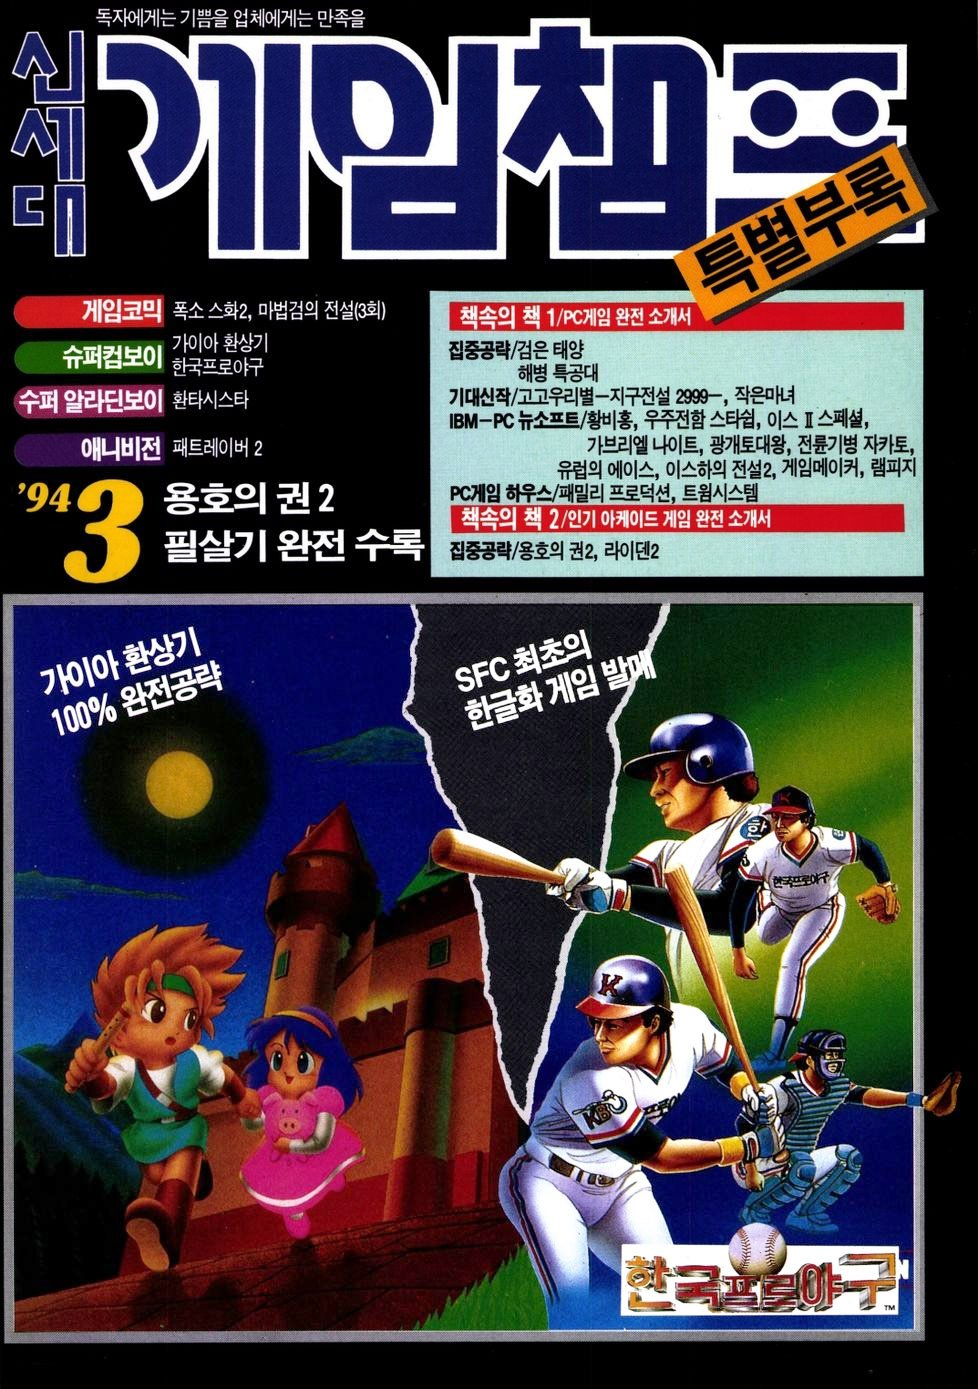 Game Champ Issue 016 supplement (March 1994)